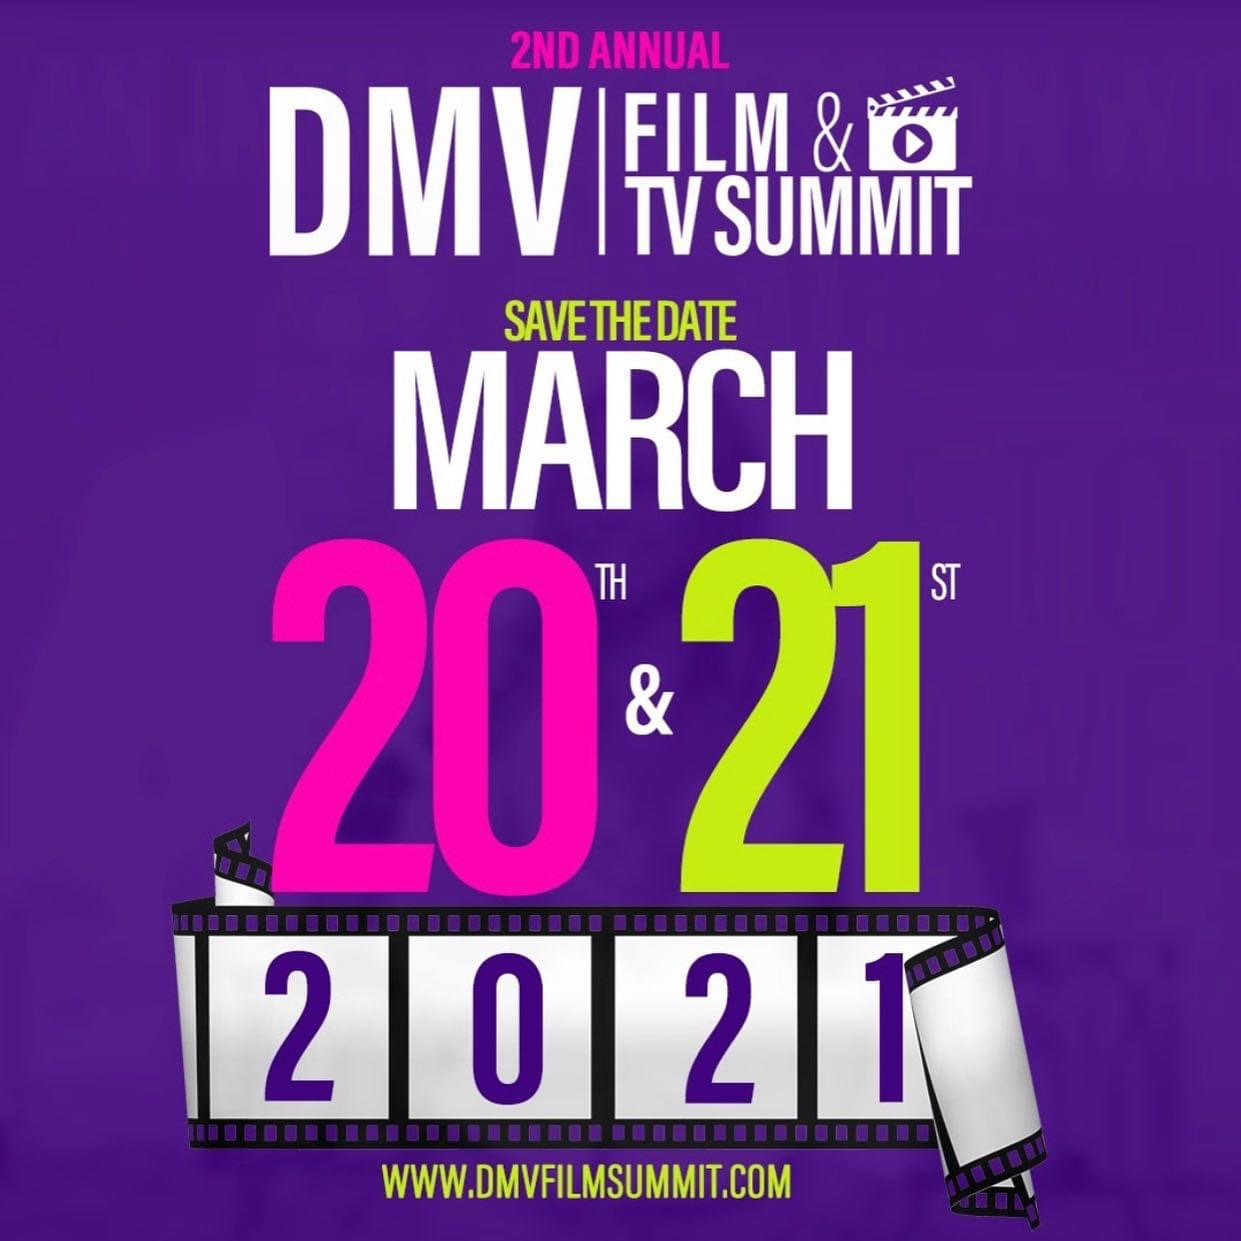 The 2nd Annual Film and TV Summit to be Held in Virtual Format featuring leading Producers, Actors, and Television Executives